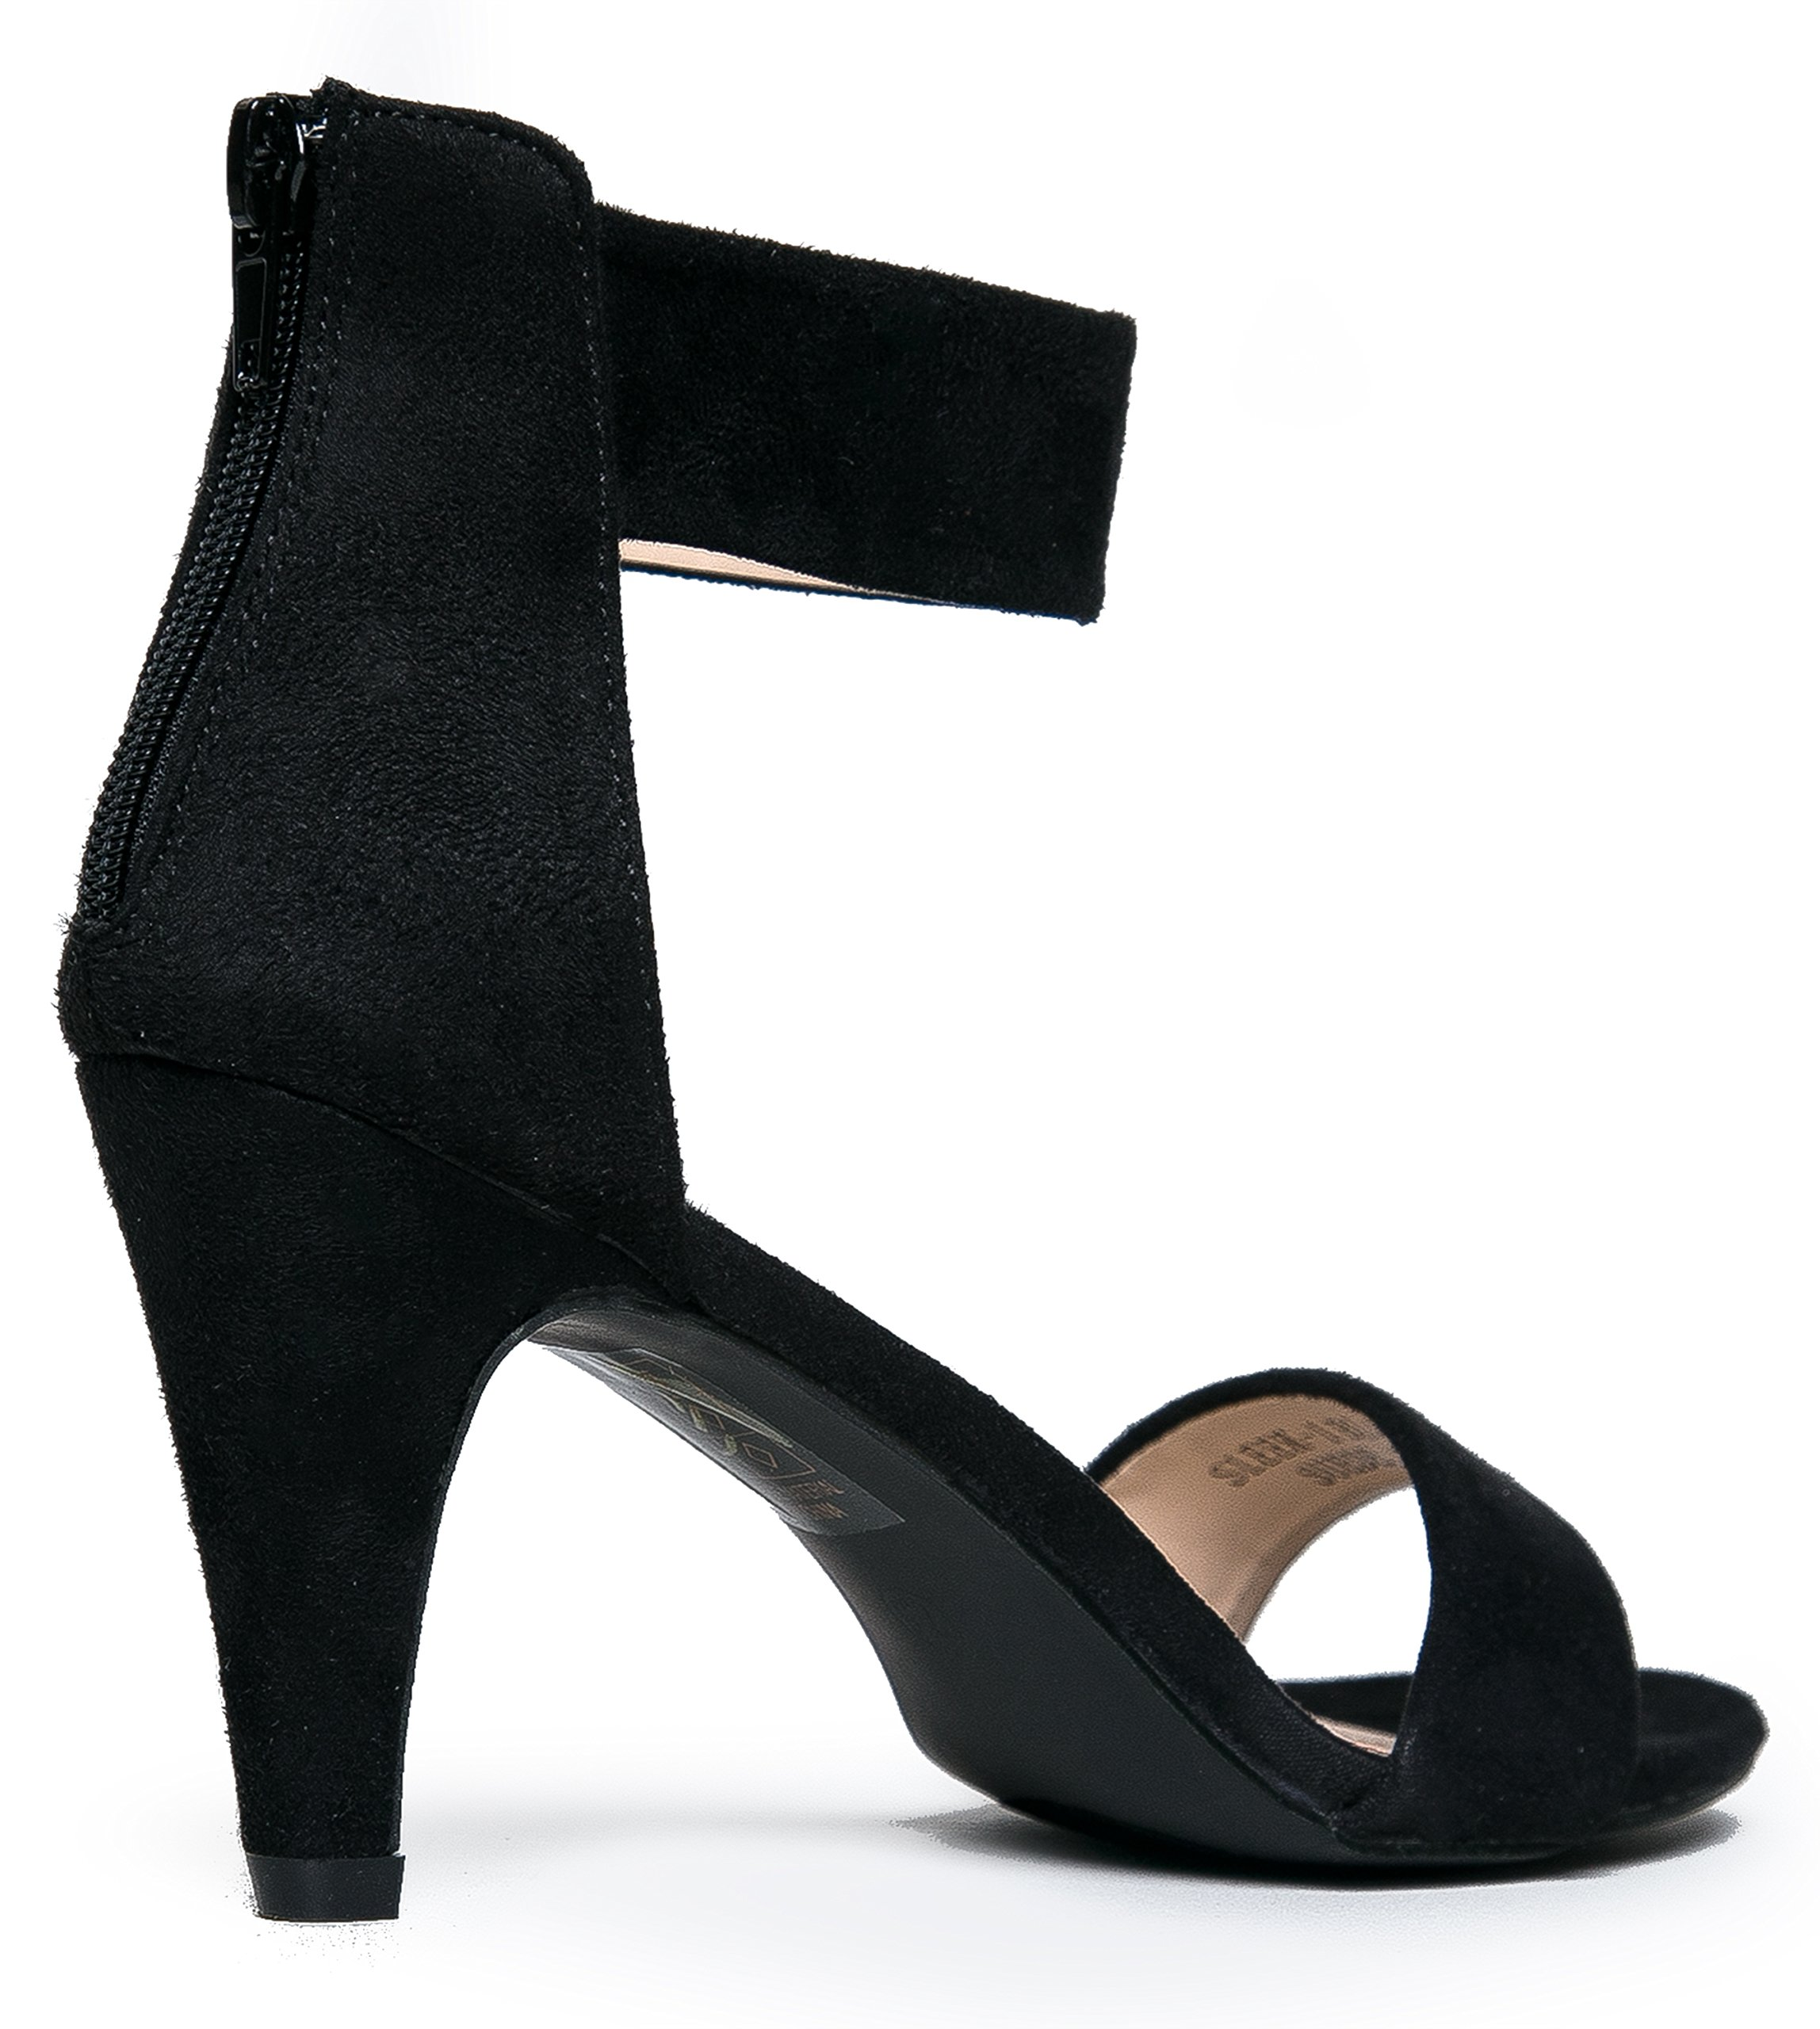 Women's Ankle Strap Open Peep Toe High Heels | Dress, Wedding, Party Heeled Sandals | Elegant, Comfortable & Strappy by J. Adams (Image #3)